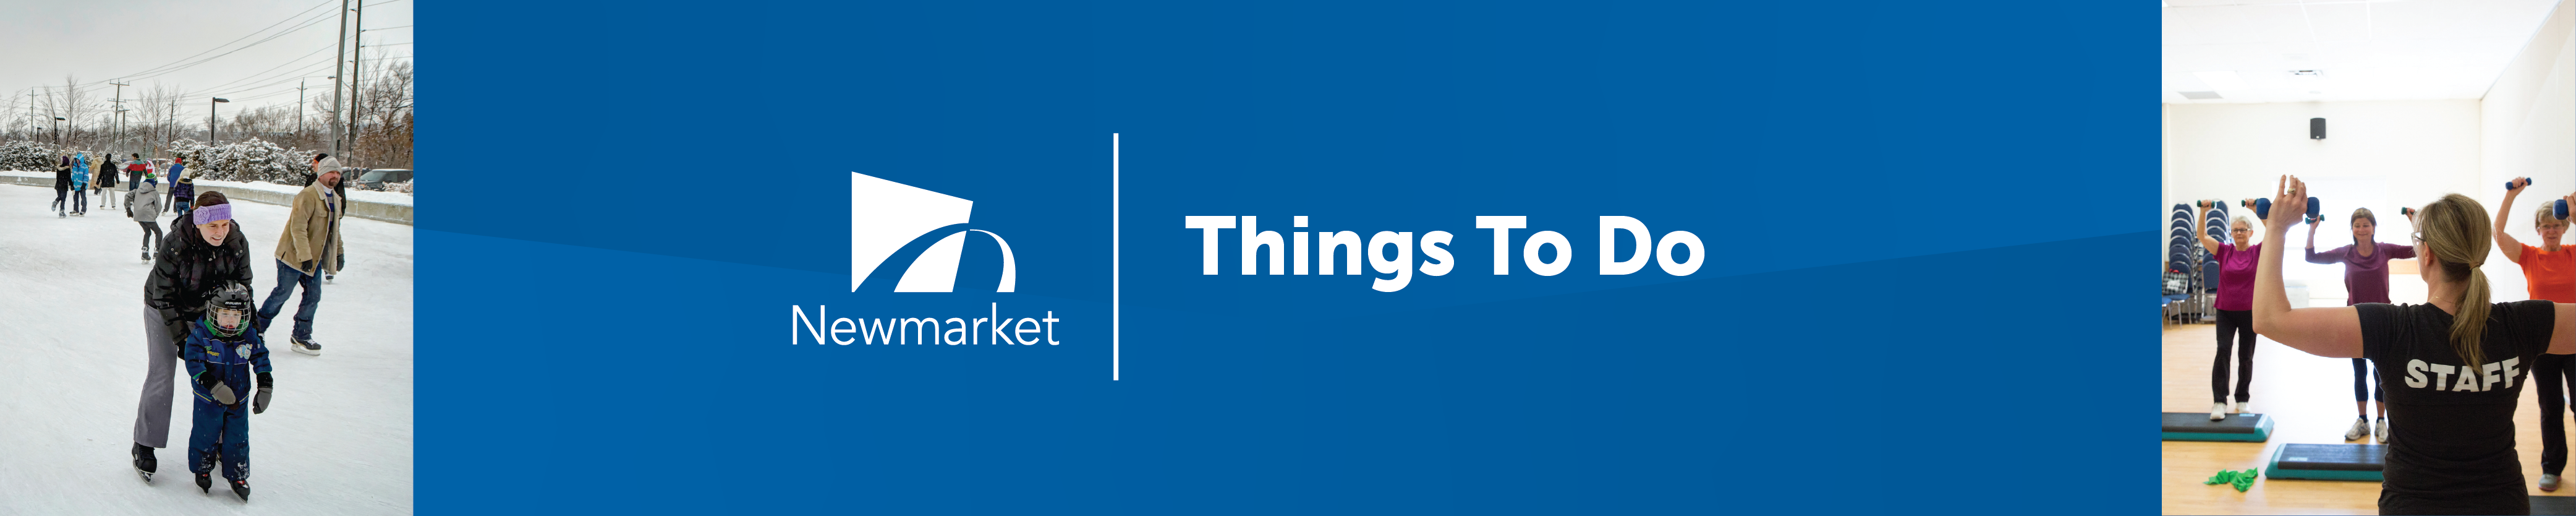 things to do banner